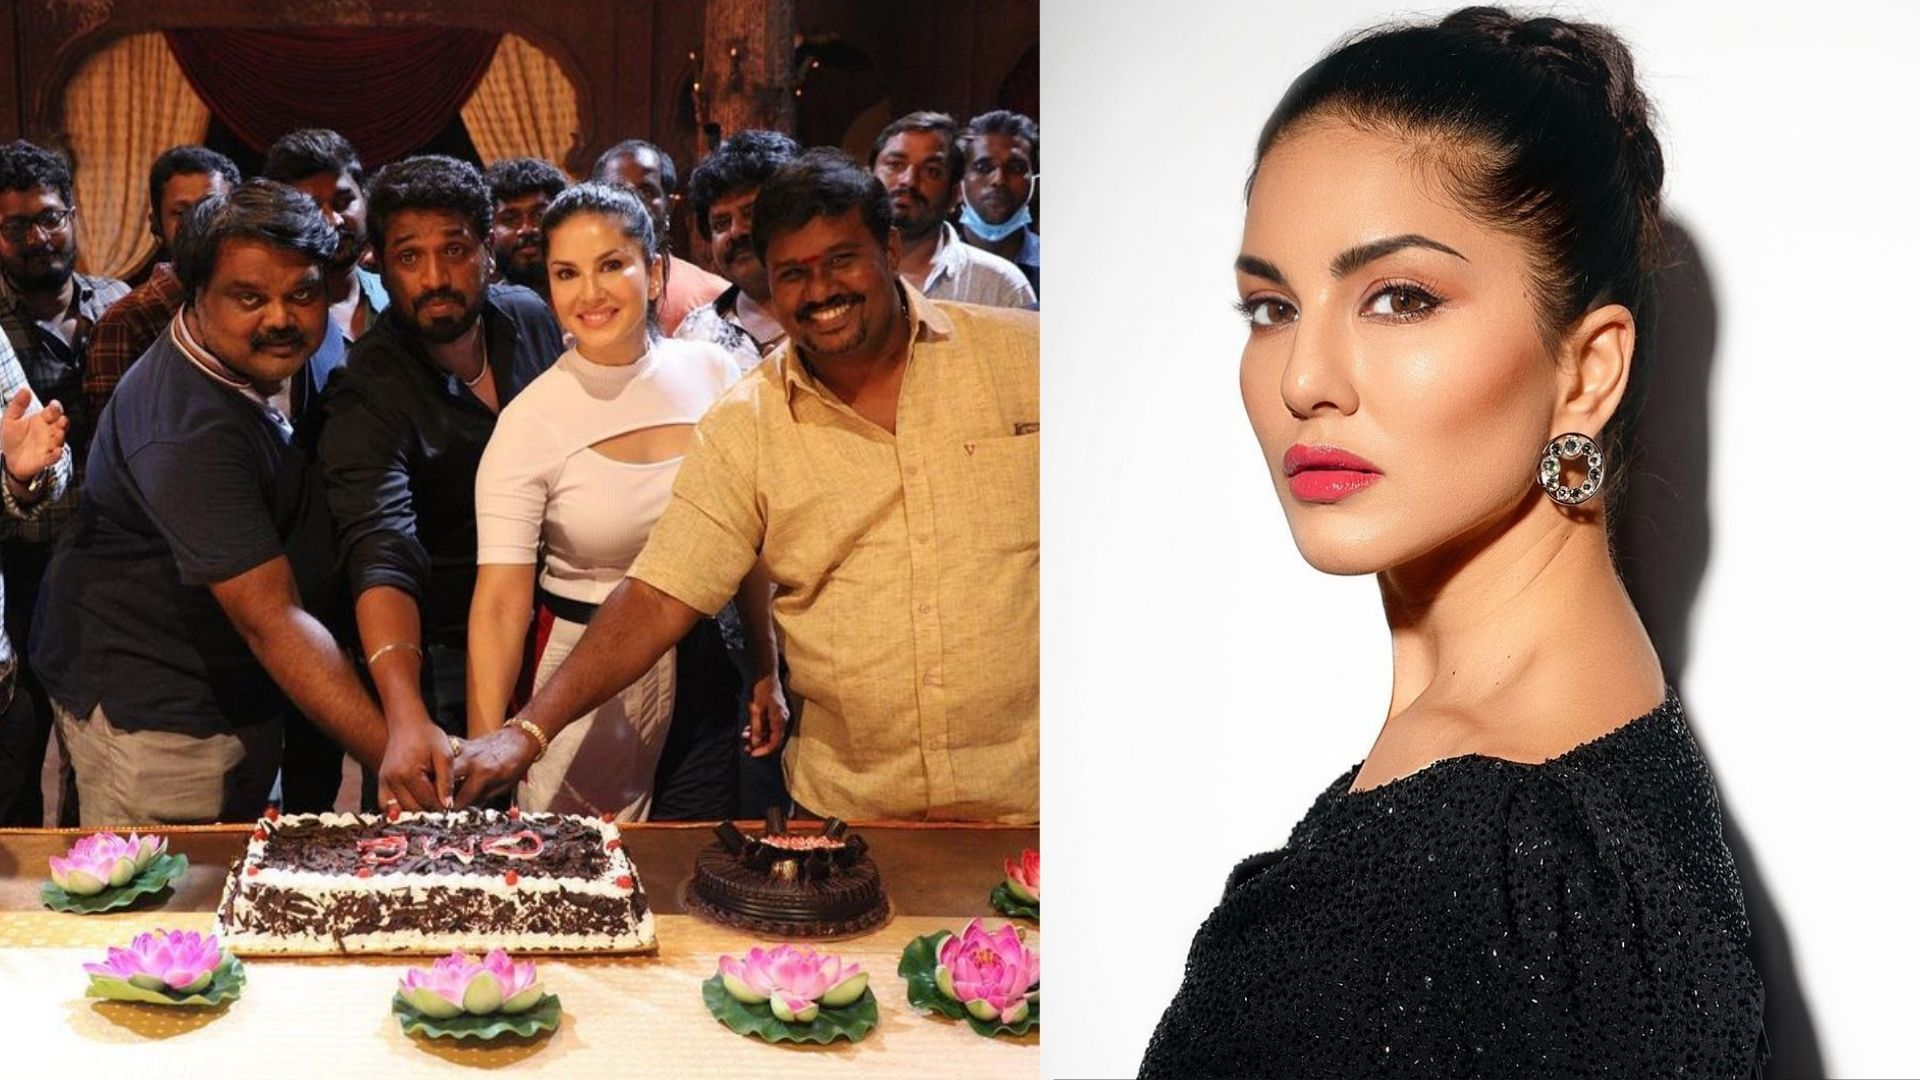 Oh My Ghost: Sunny Leone Wraps Up Film Production Of Debut Tamil Film; Shares BTS Photo With Crew On Gram – SEE PICS